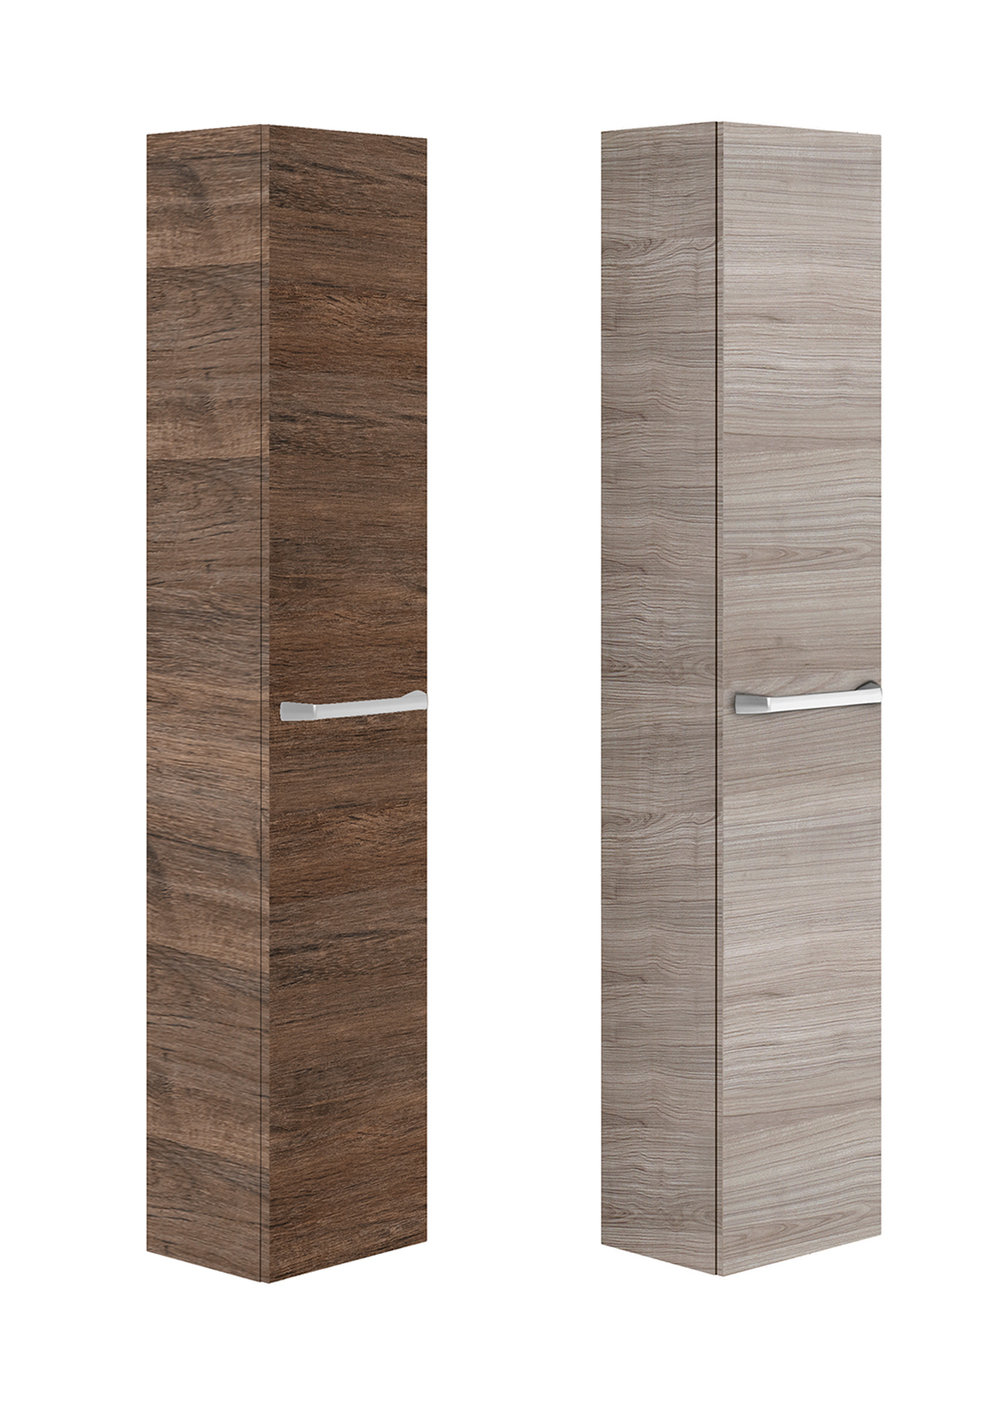 ASTER WALL-MOUNT LINEN CABINET - Finish: Textured MelamineDesign: Grey Wood Veneer or grey wood veneerSoft close hingesMetallic handles